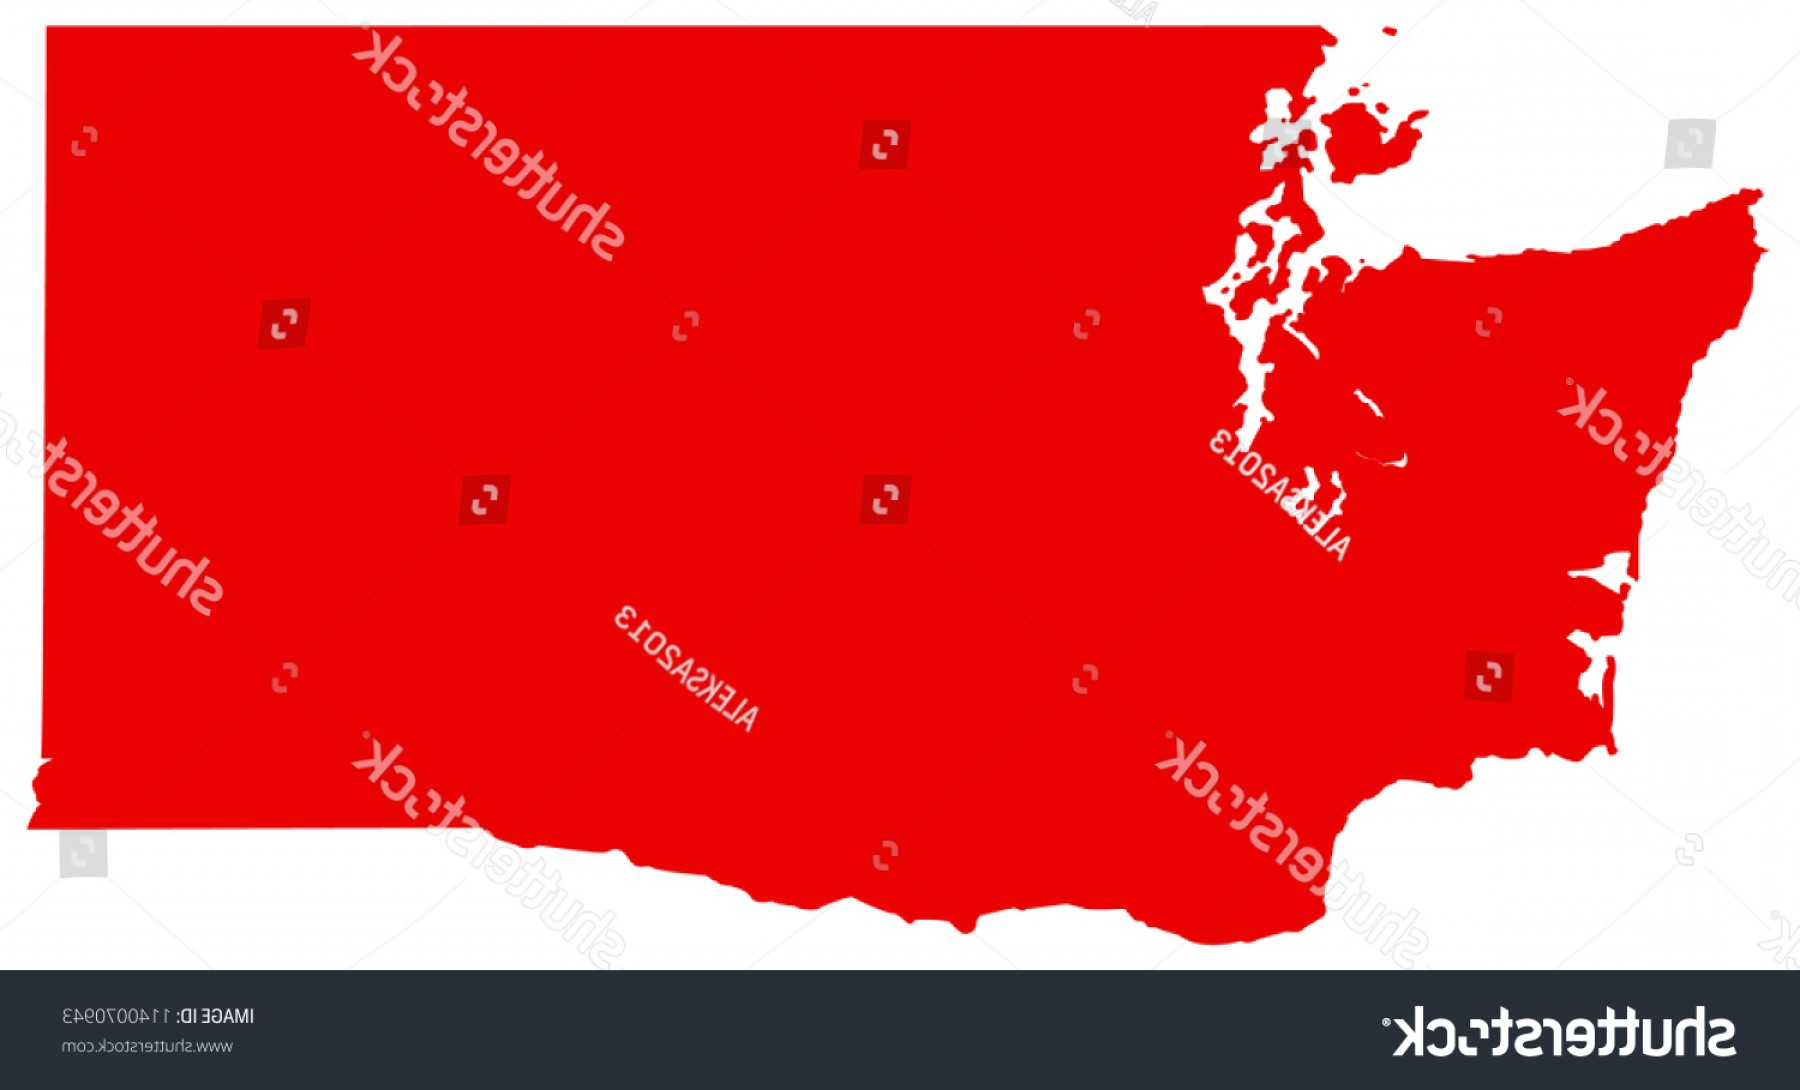 Washington State Map Vector: Vector Illustration Washington State Map